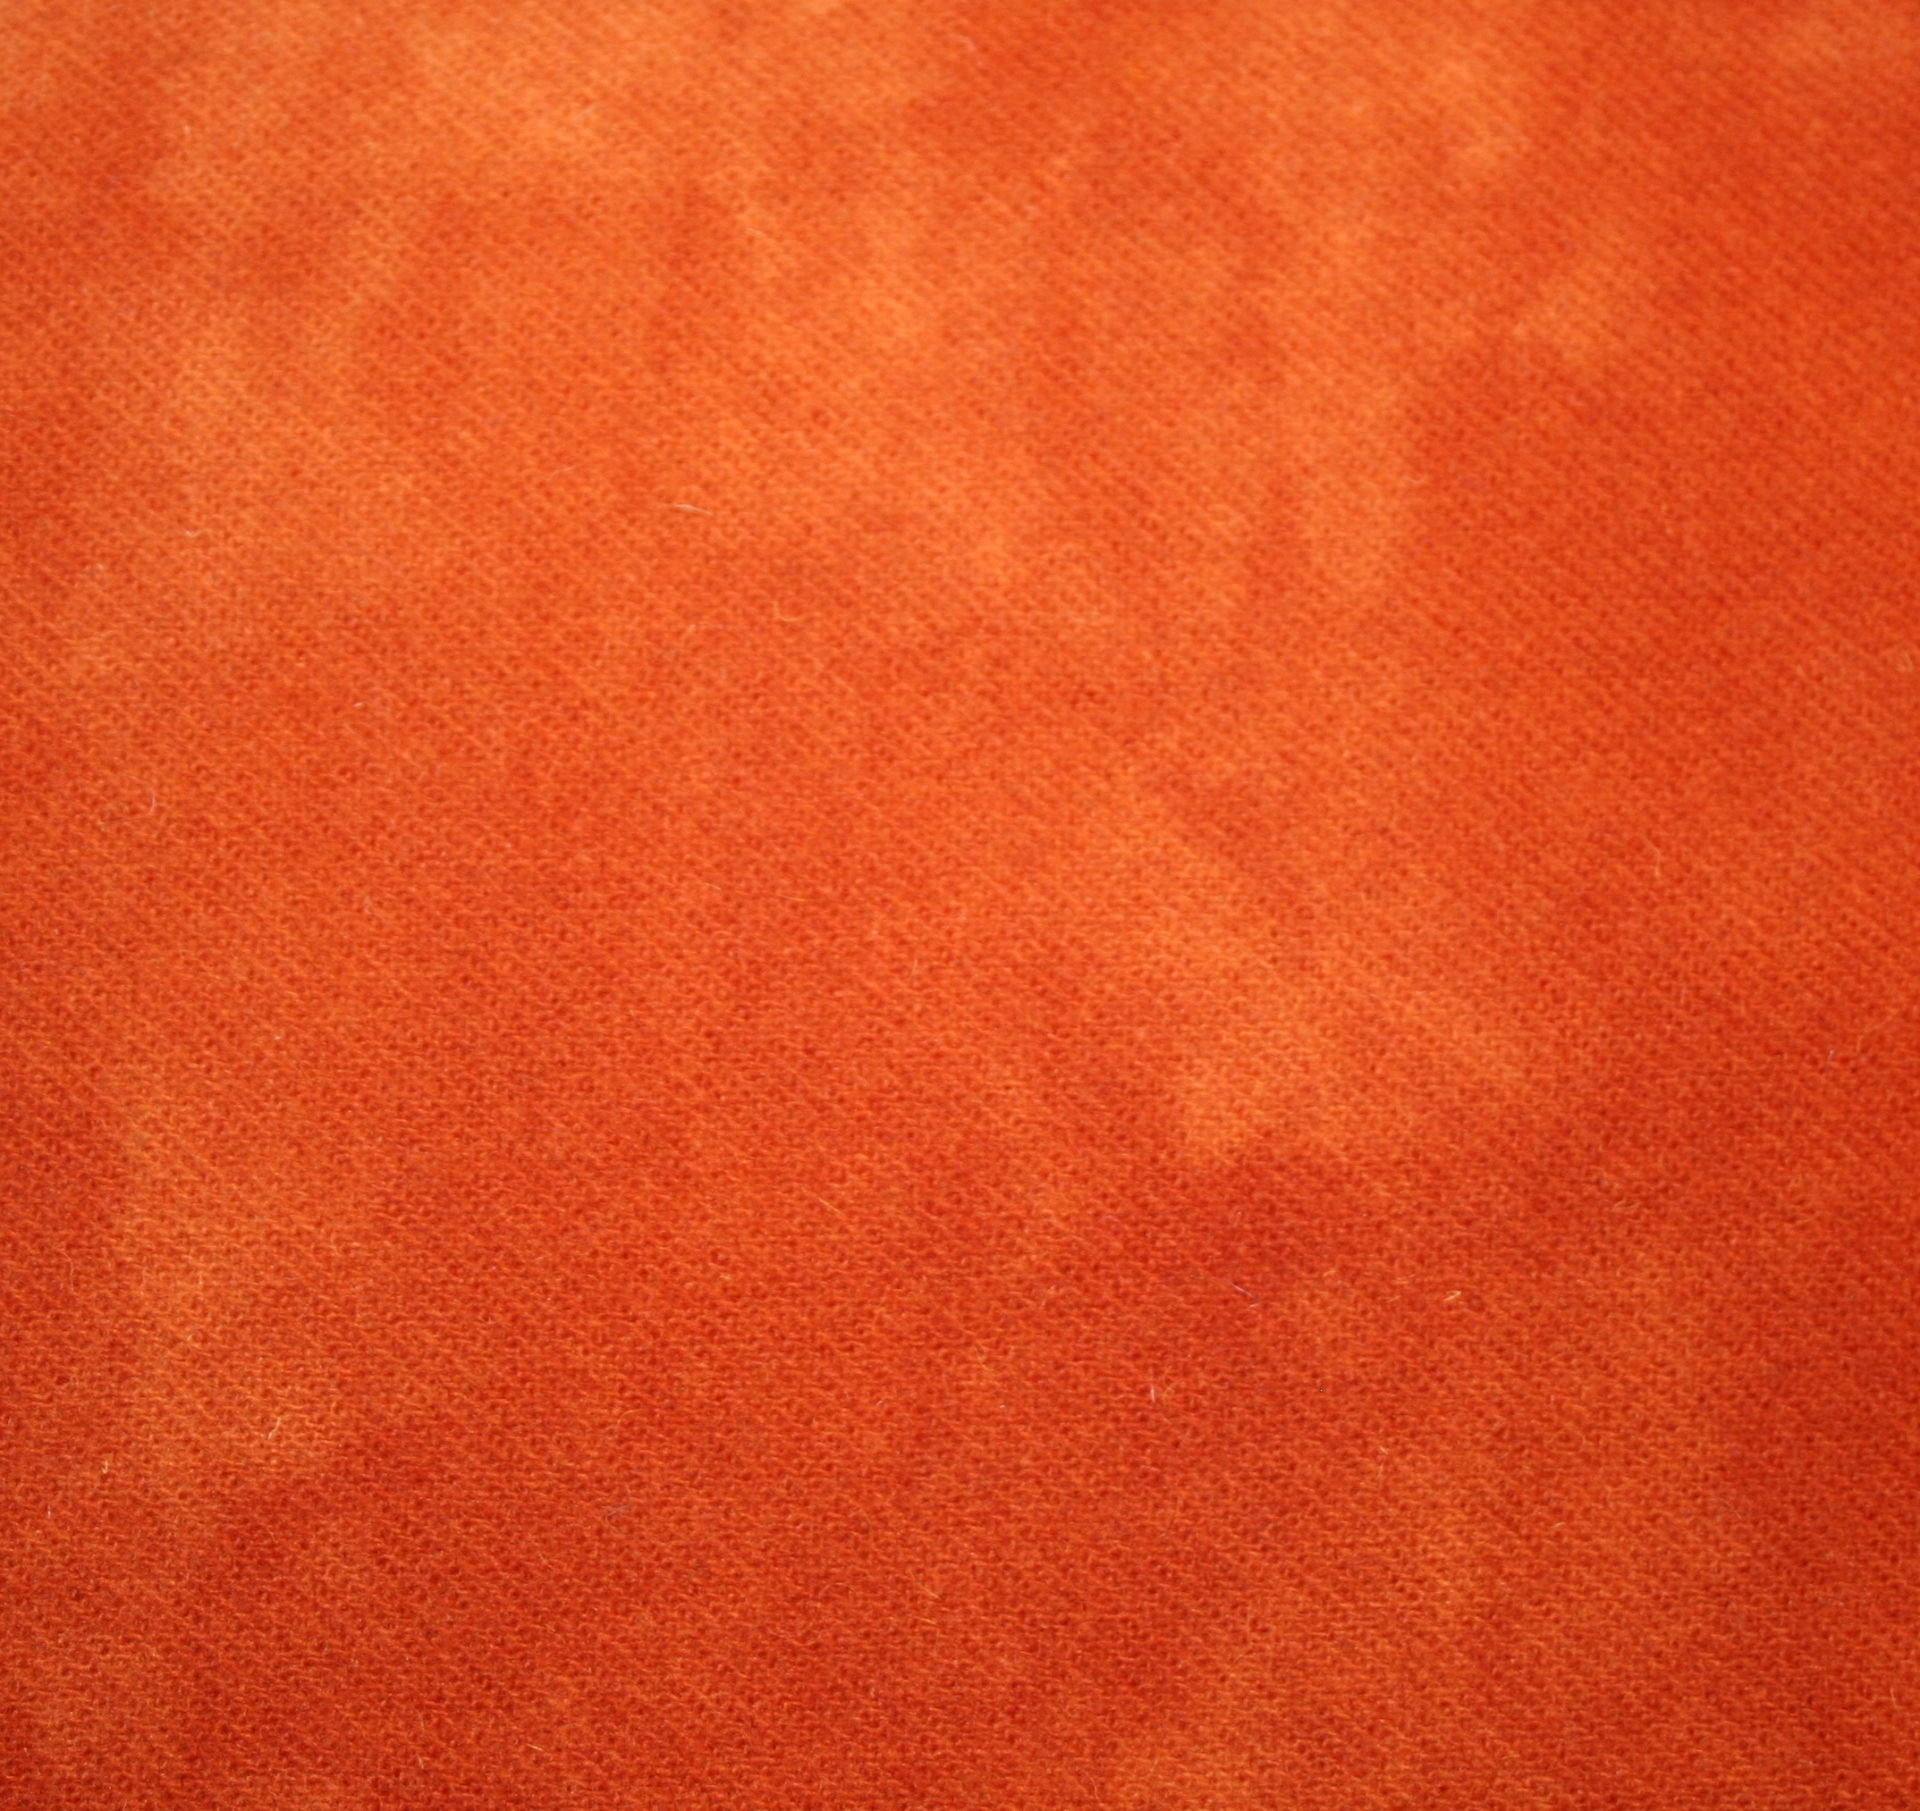 Cinnamon Artisan Hand dyed 100% wool Part of the Tuscany Collection